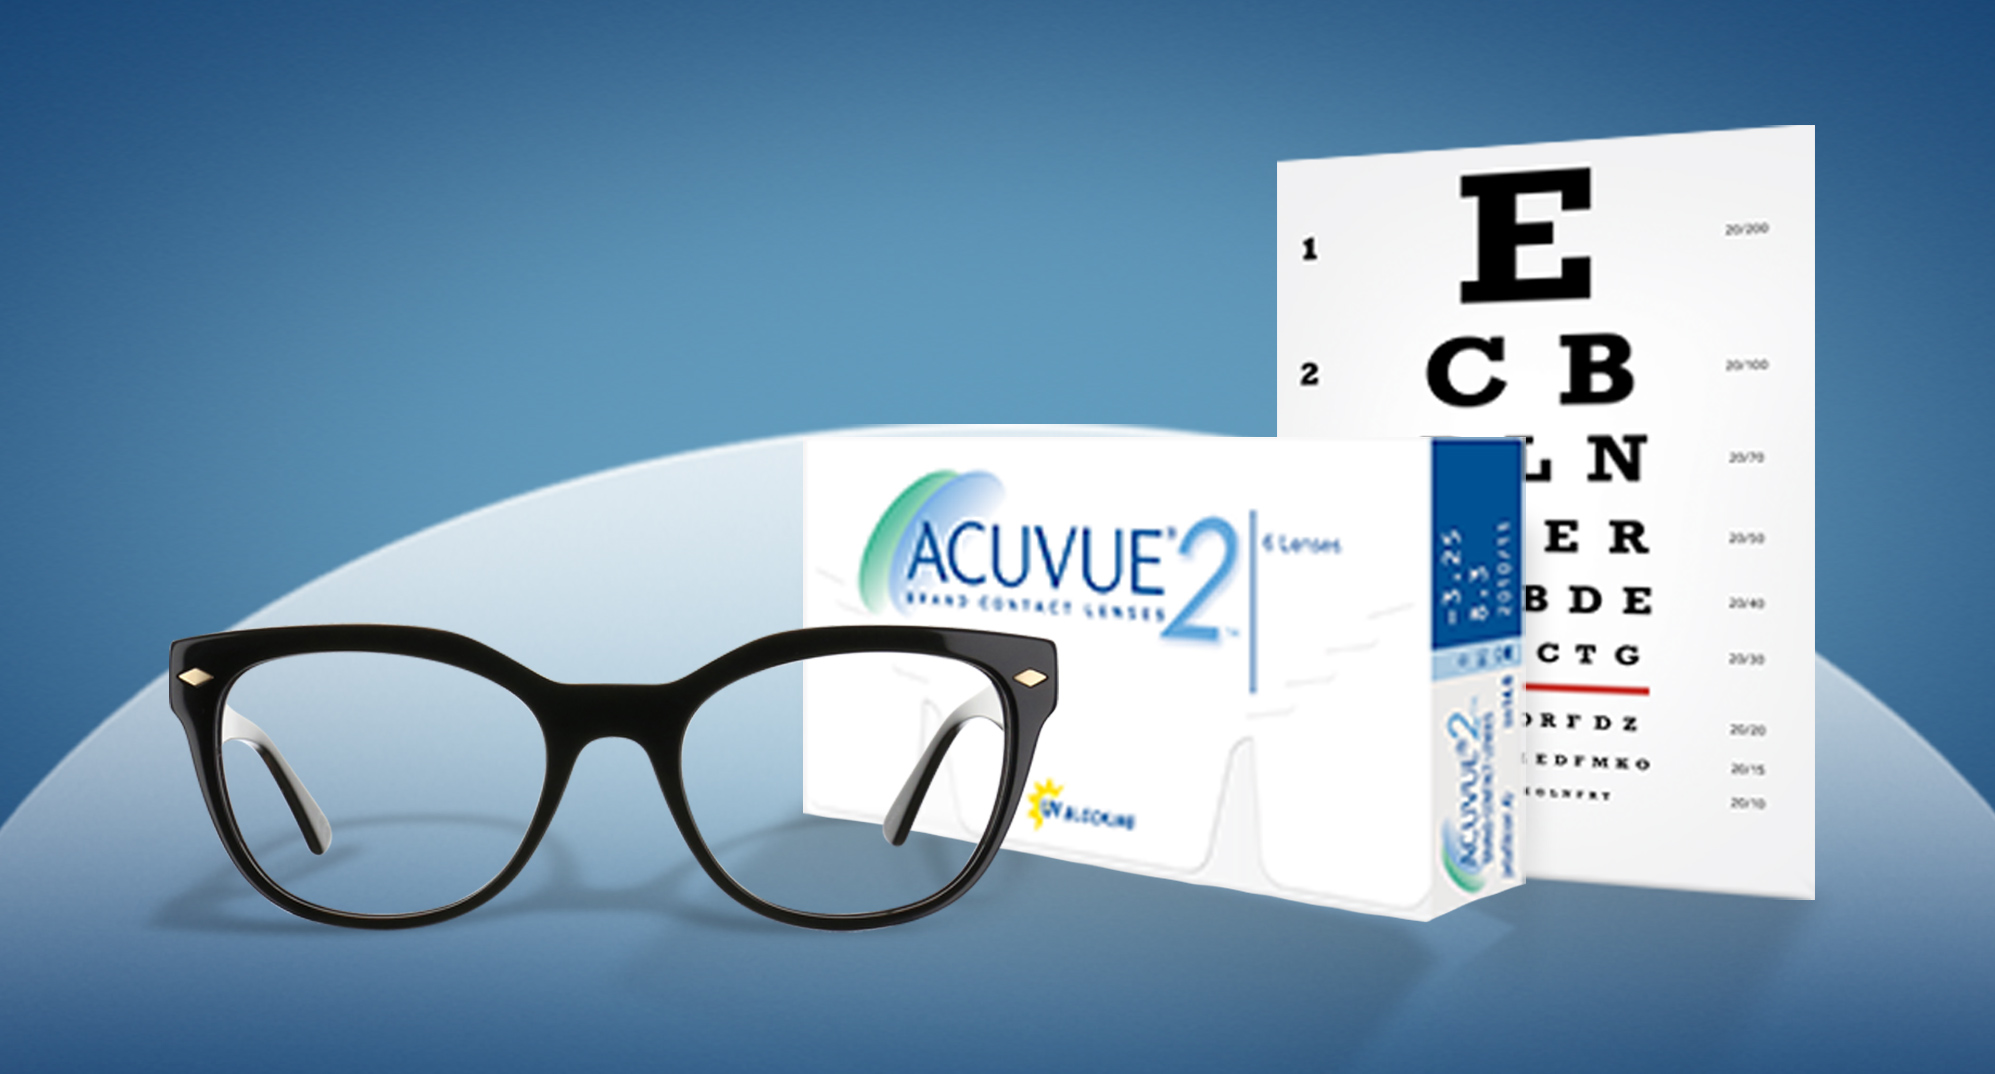 Pair of glasses, Box of contact lenses & Snellen eye chart